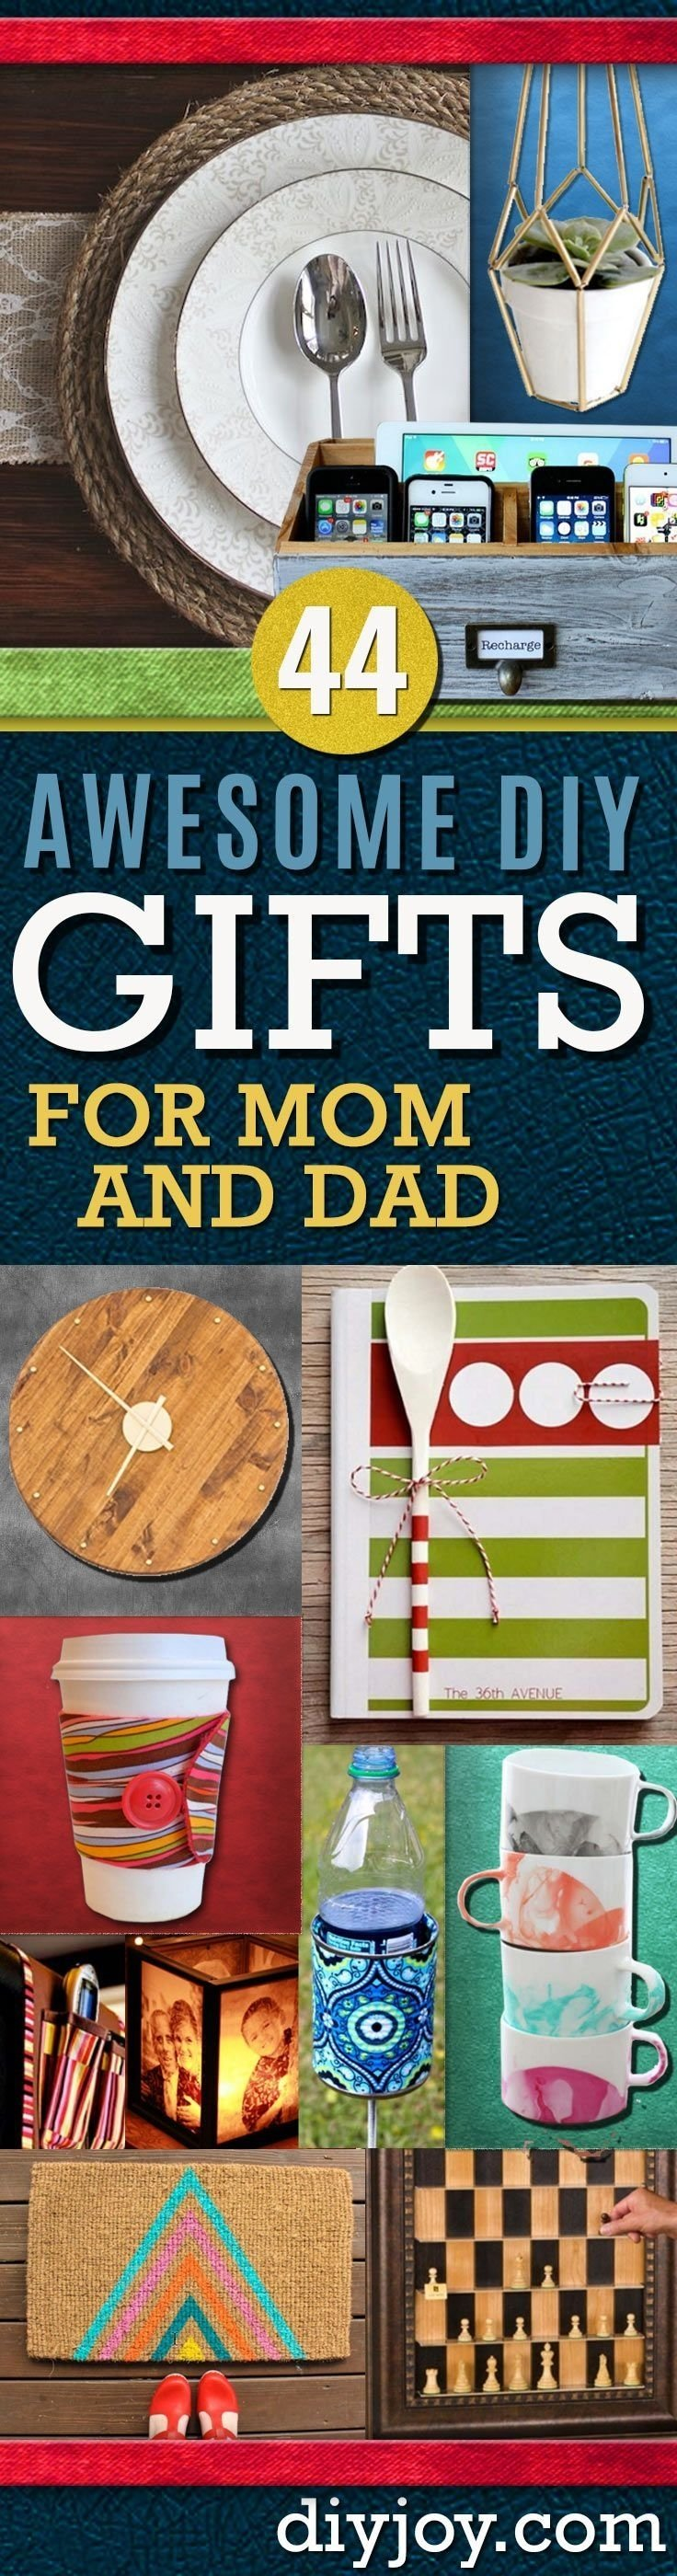 10 Gorgeous Christmas Gift Idea For Dad cool christmas gifts to make for your parents dollar store crafts 2 2021